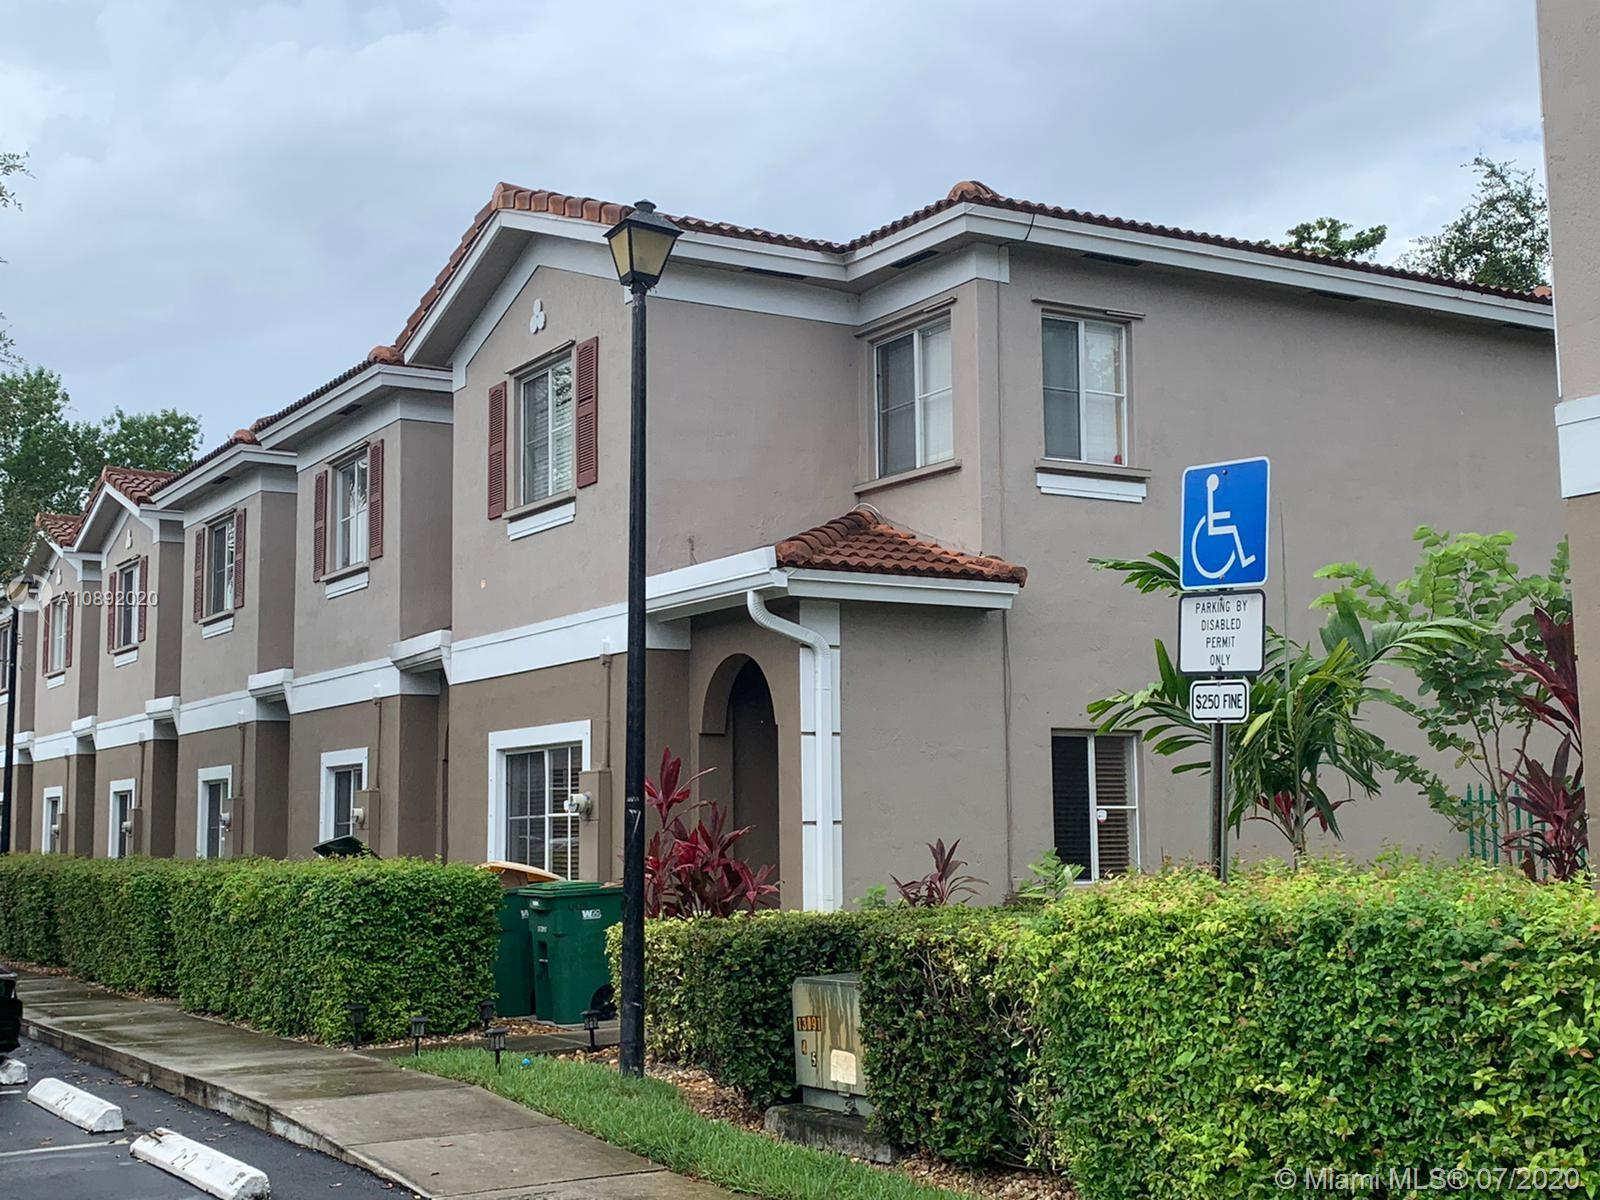 **INVESTORS DREAM NEWLY BUILT TOWNHOUSE IN GREAT CONDITION*RENTED FOR $1650 UNTIL 8/1/20211BEDROOM IS DOWN WITH A FULL BATH & 2 BEDROOMS ARE UPSTAIRS* NEWER KITCHEN WITH GRANIT COUNTER TOPS NICE APPLIANCES. FRESHLY PAINTED AND CLEAN* SMALL COMMUNITY VERY QUIET** WALKING DISTANCE TO SYNAGOGUES